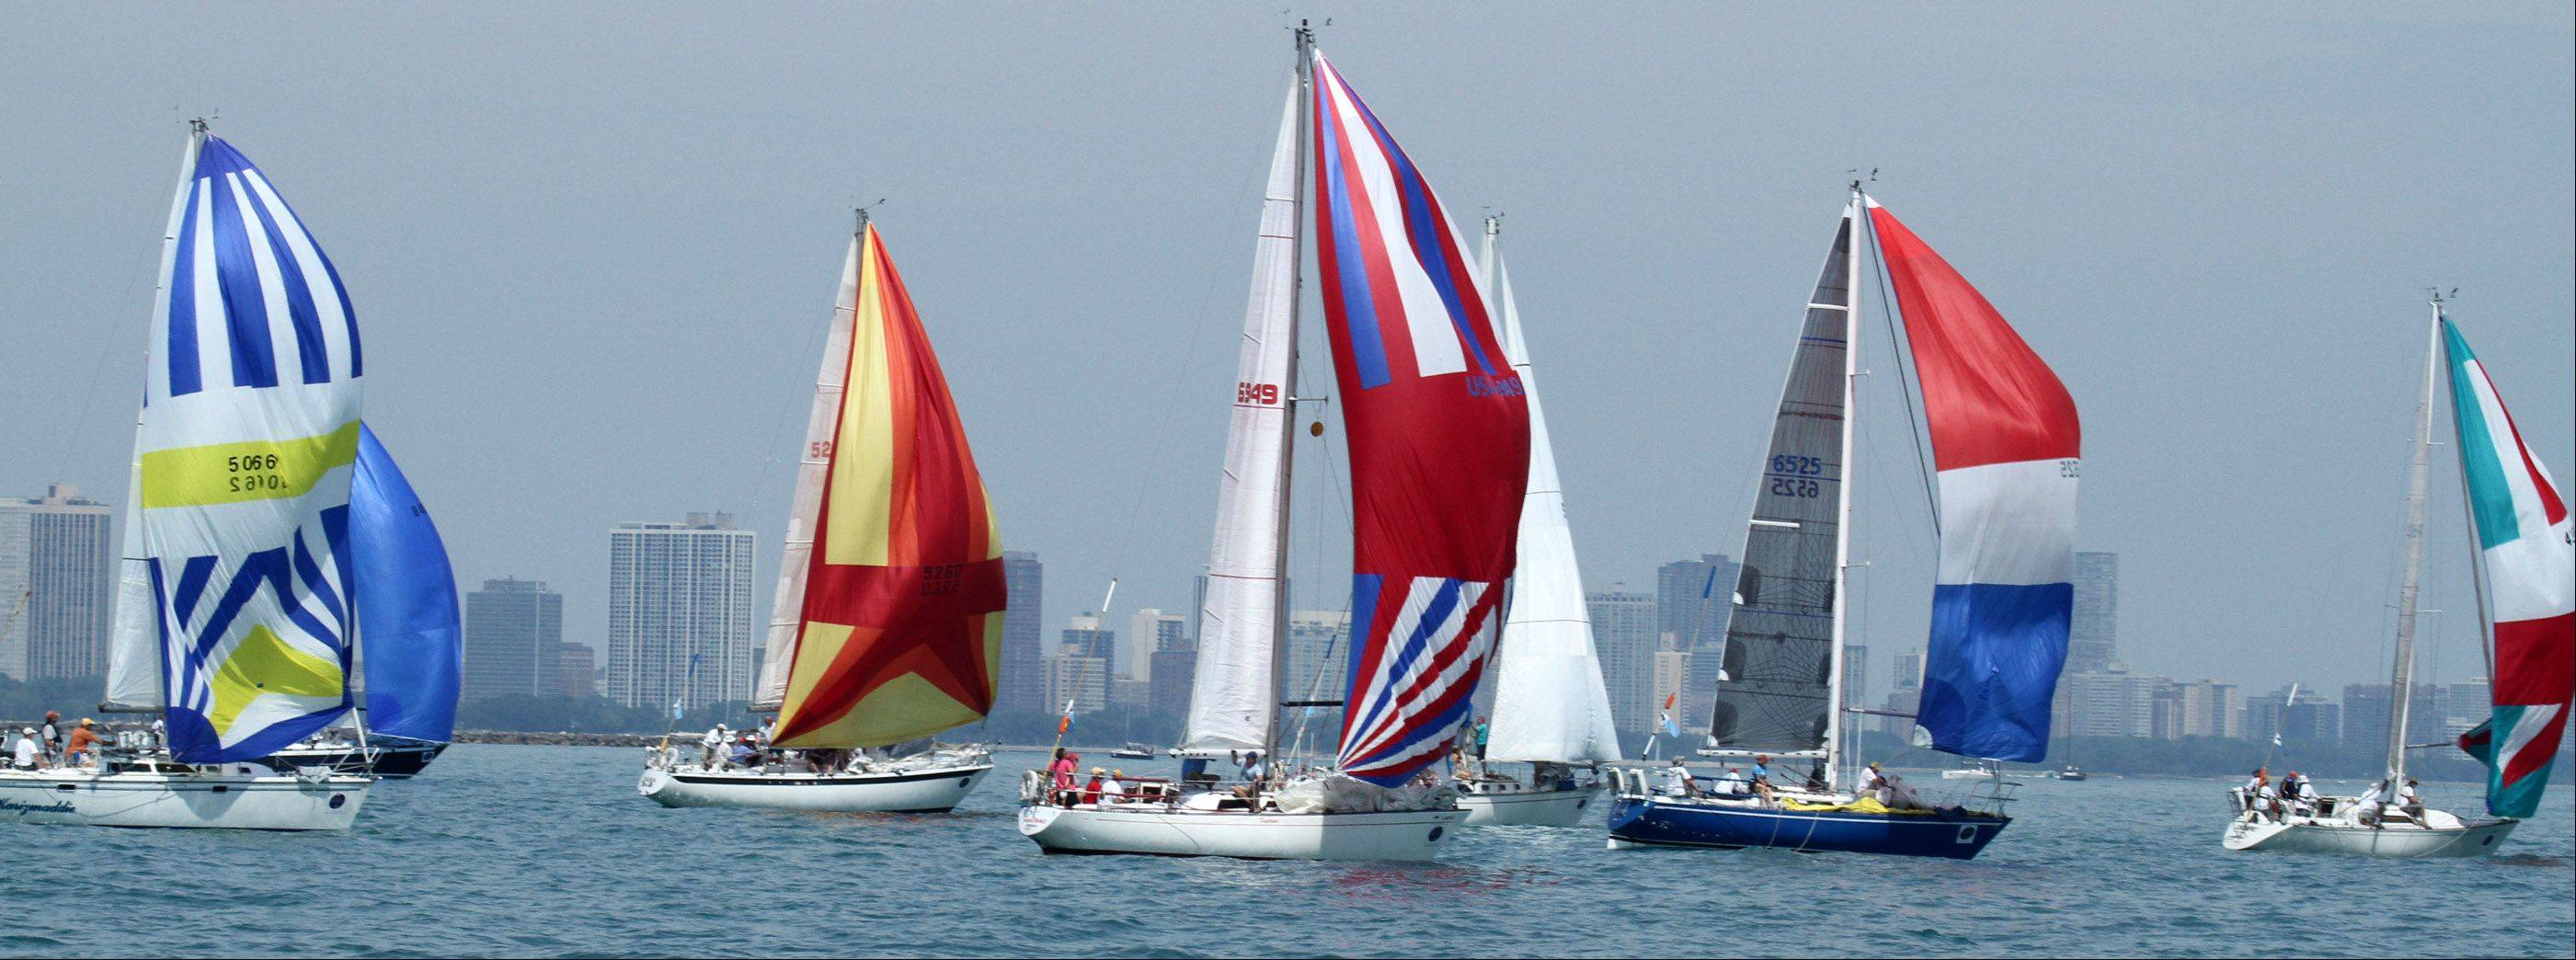 The start of the 104th Chicago Yacht Club Race to Mackinac.